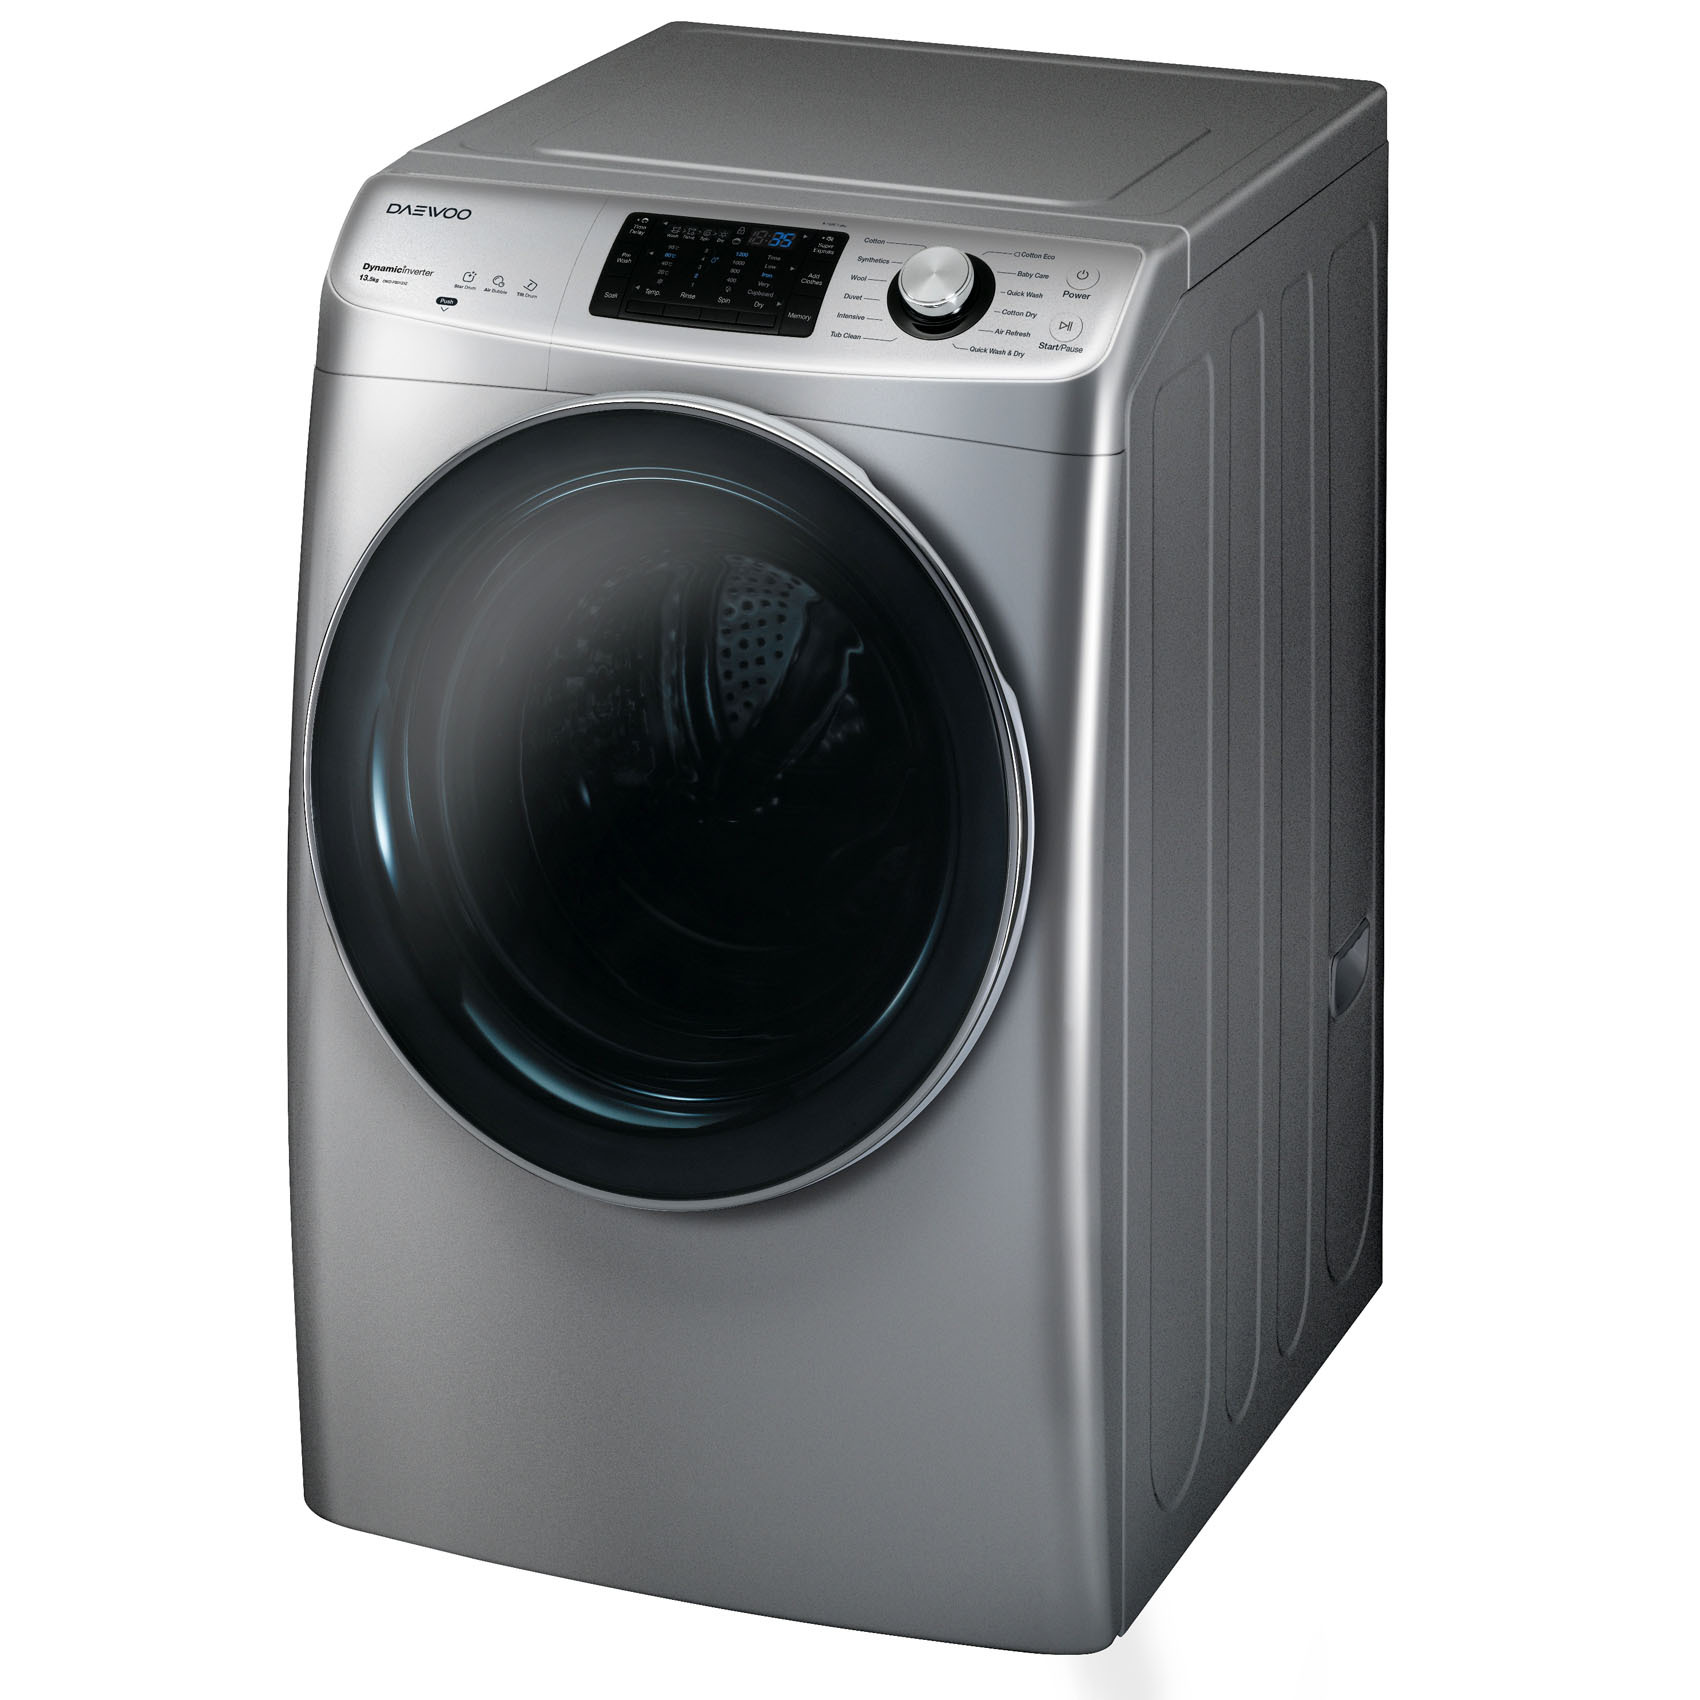 DAEWOO W/DRYER DWC-DWC-SD1213 12/7K